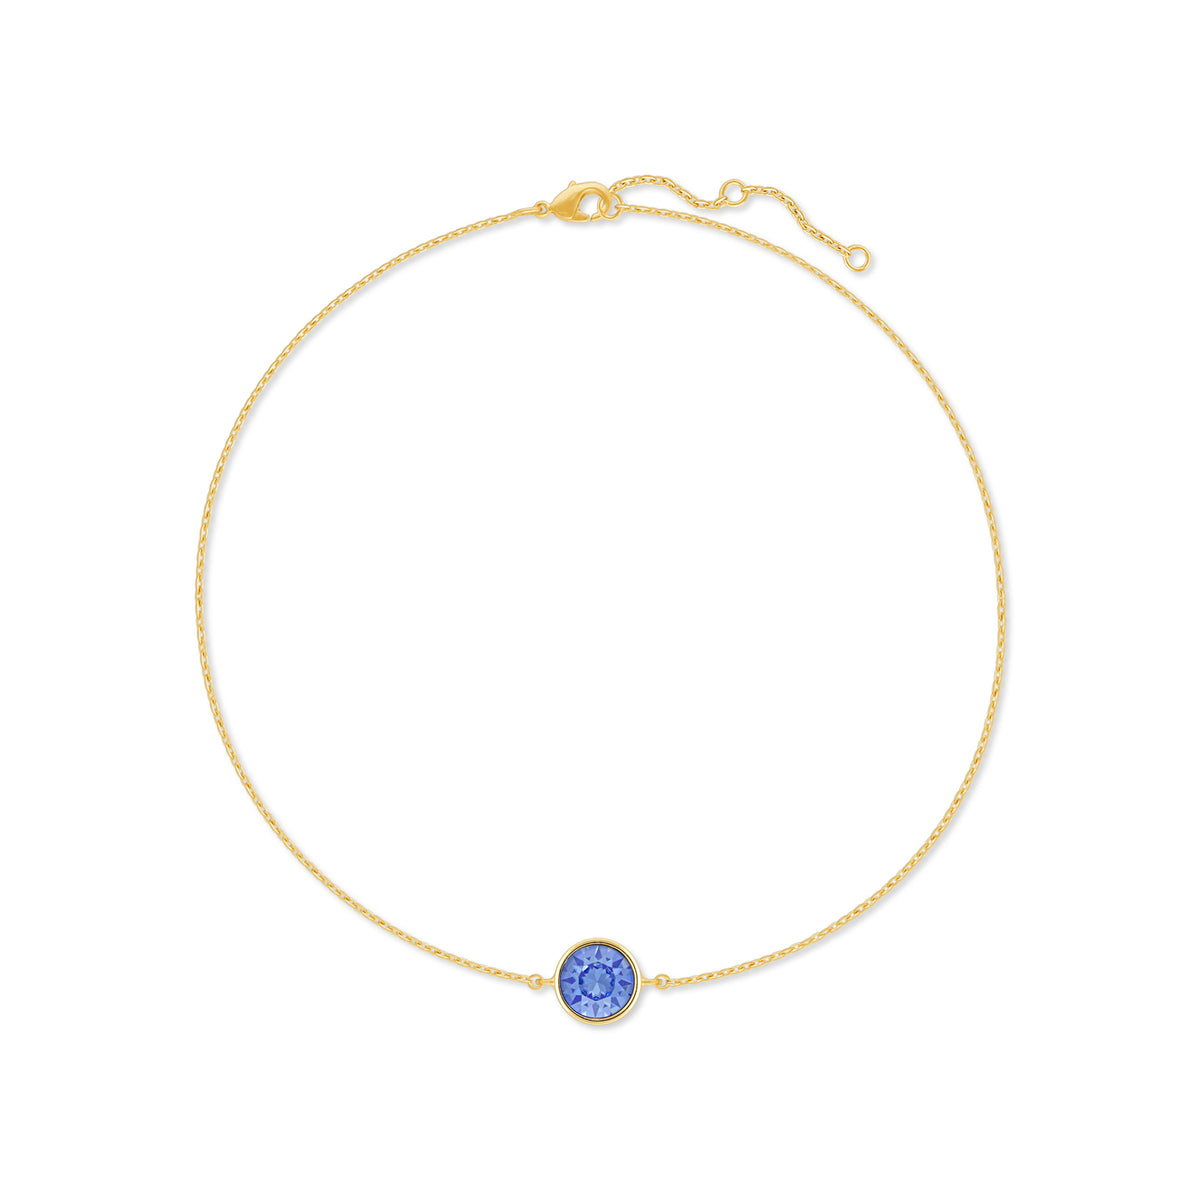 Harley Chain Bracelet with Blue Light Sapphire Round Crystals from Swarovski Gold Plated - Ed Heart